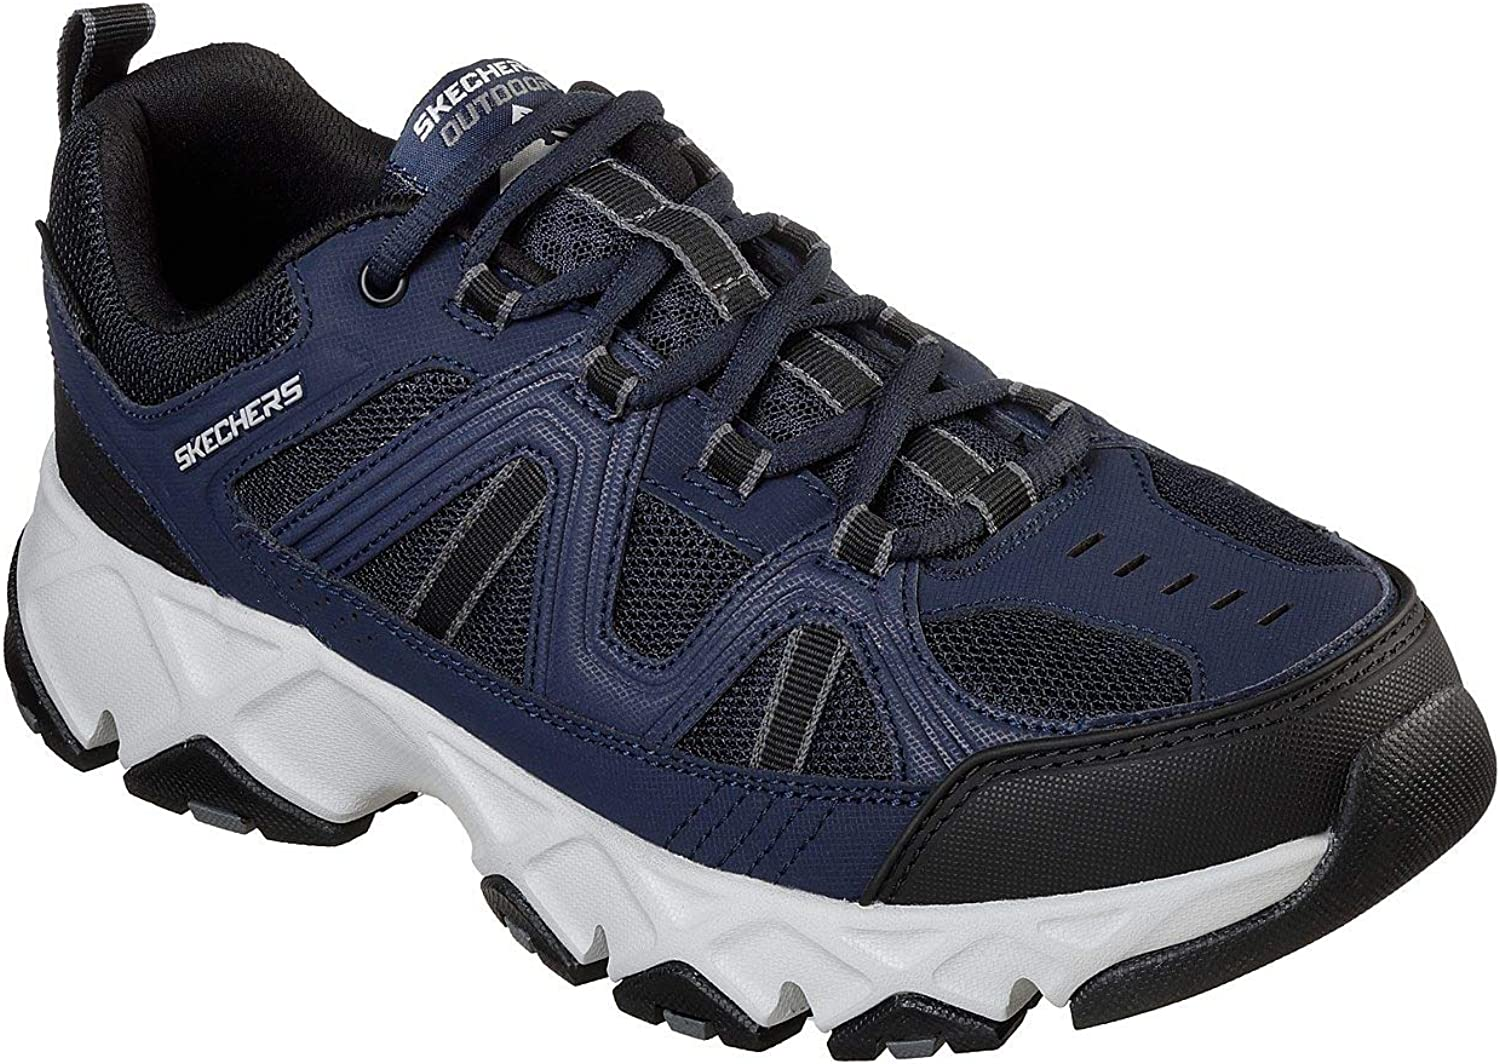 Skechers Men's Crossbar Navy/Black 12 EE US EE - Wide B079RJS13Z  | Luxus